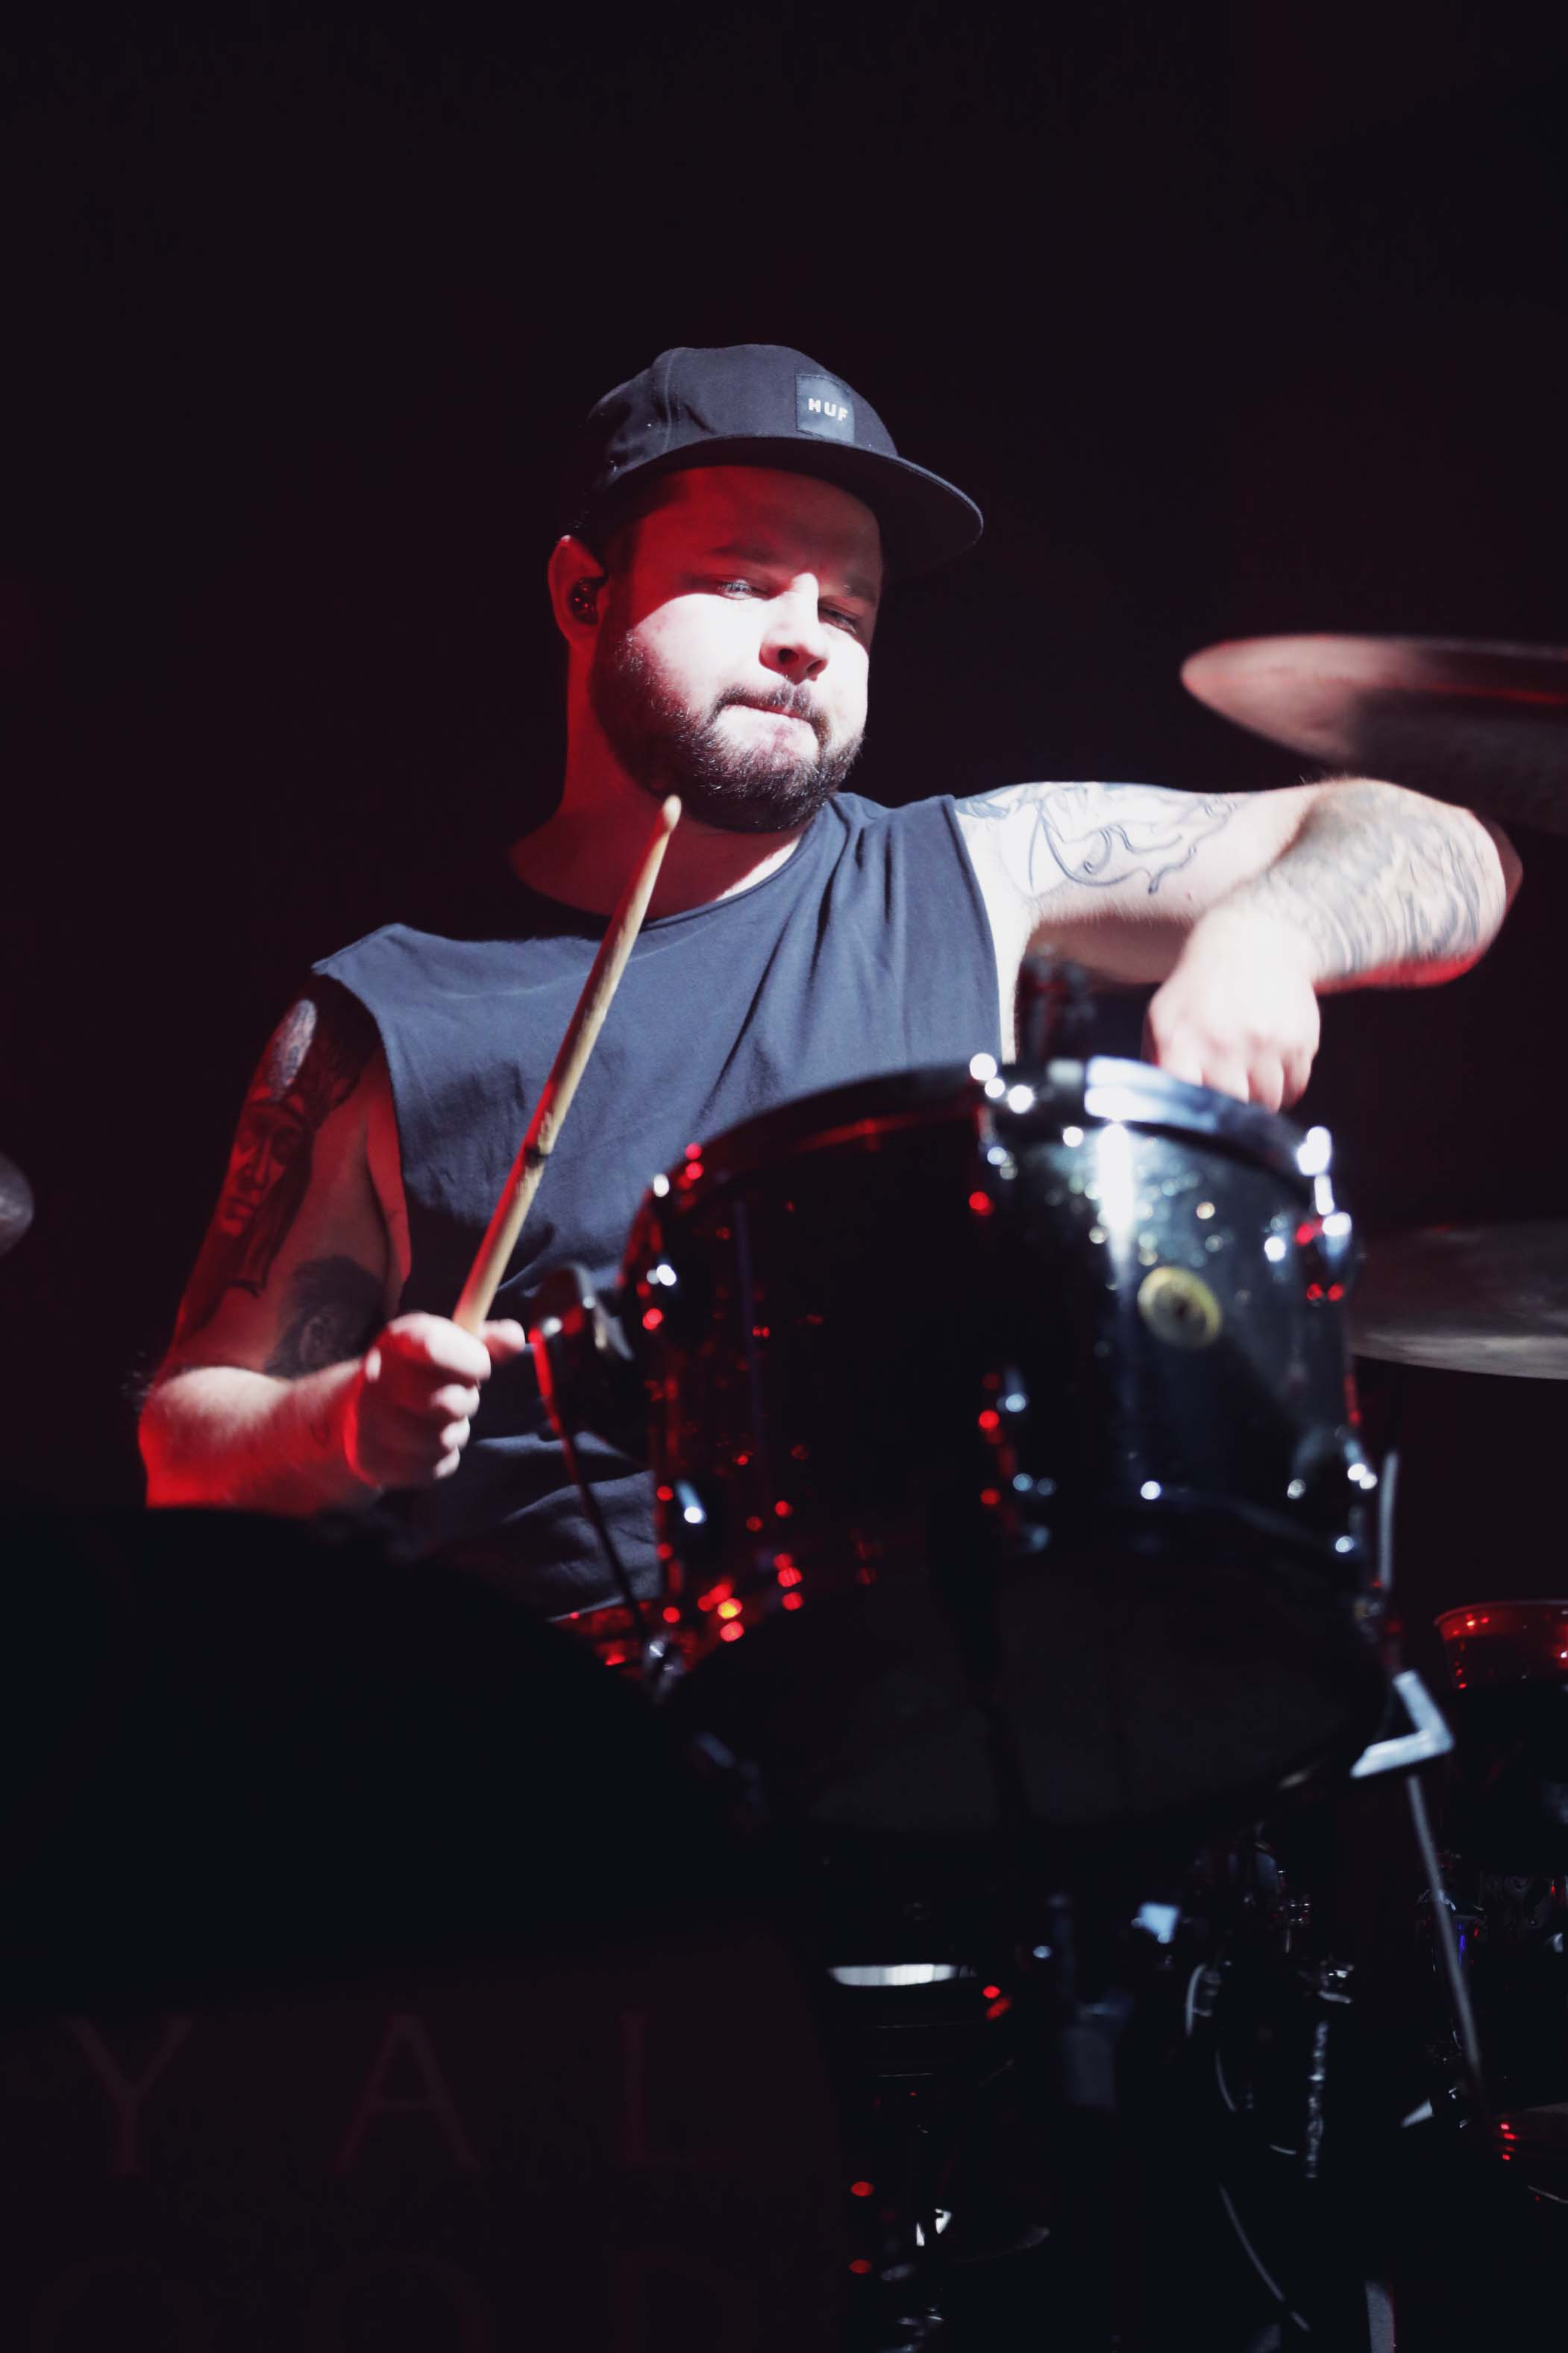 Drummer for Royal Blood, Mr. Ben Thatcher. Photo: Lmsorenson.net